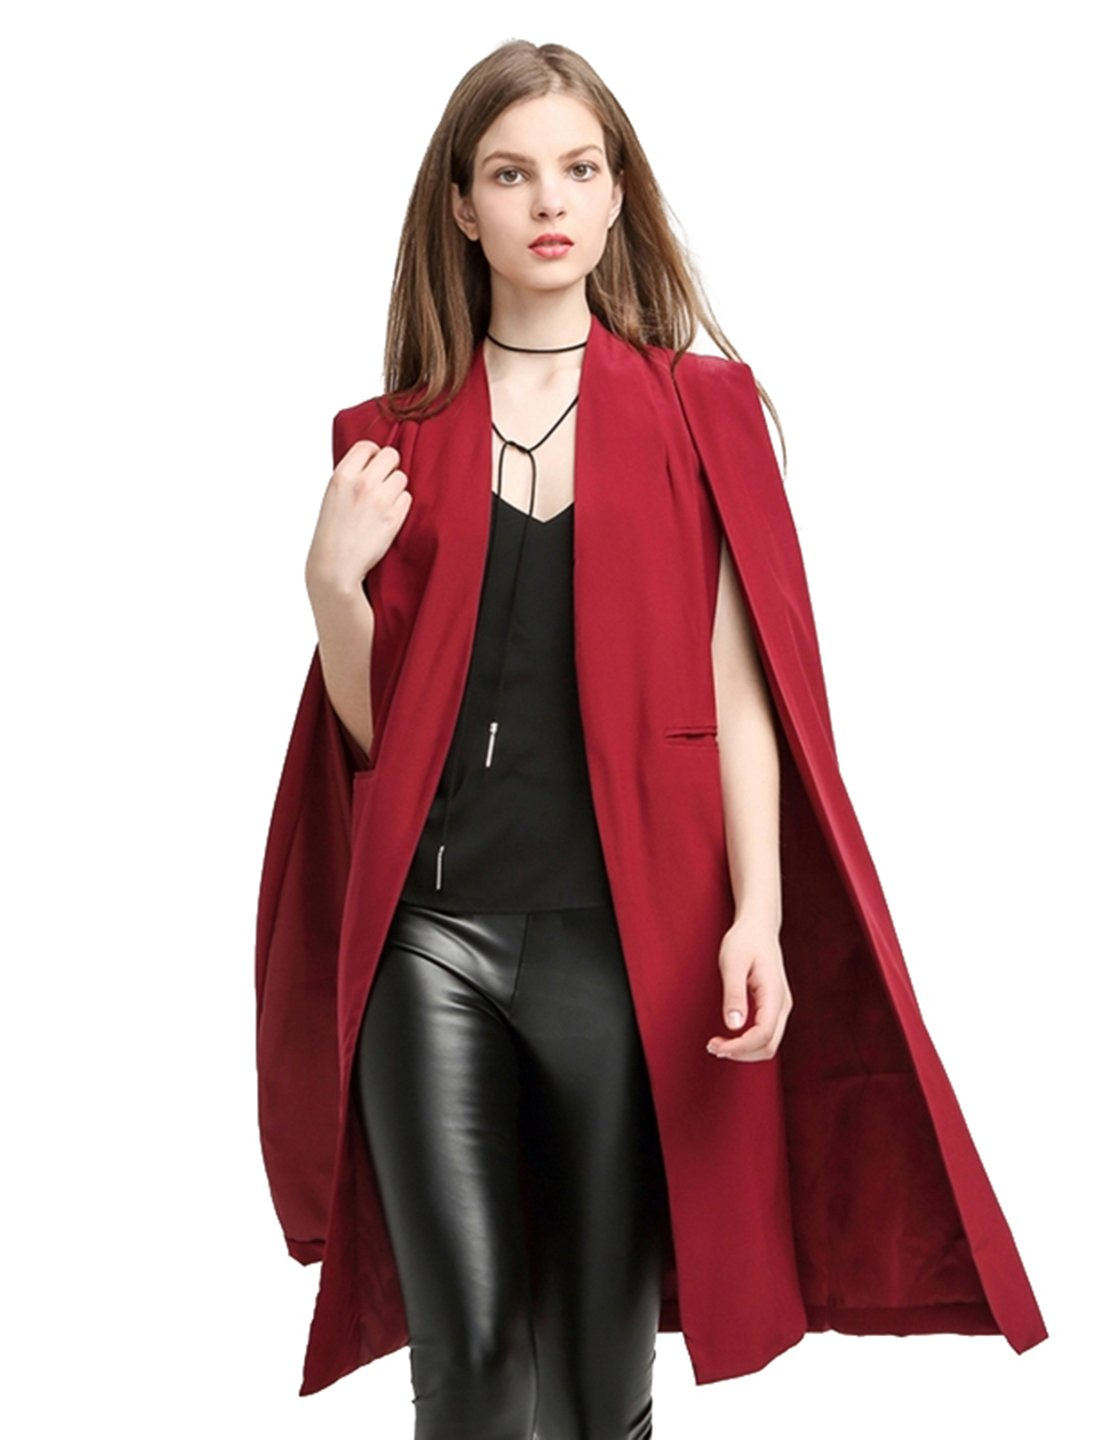 L E M O N Richlulu Women Lightweight Open Front Cloak Cape Trench Coat Longline Blazer